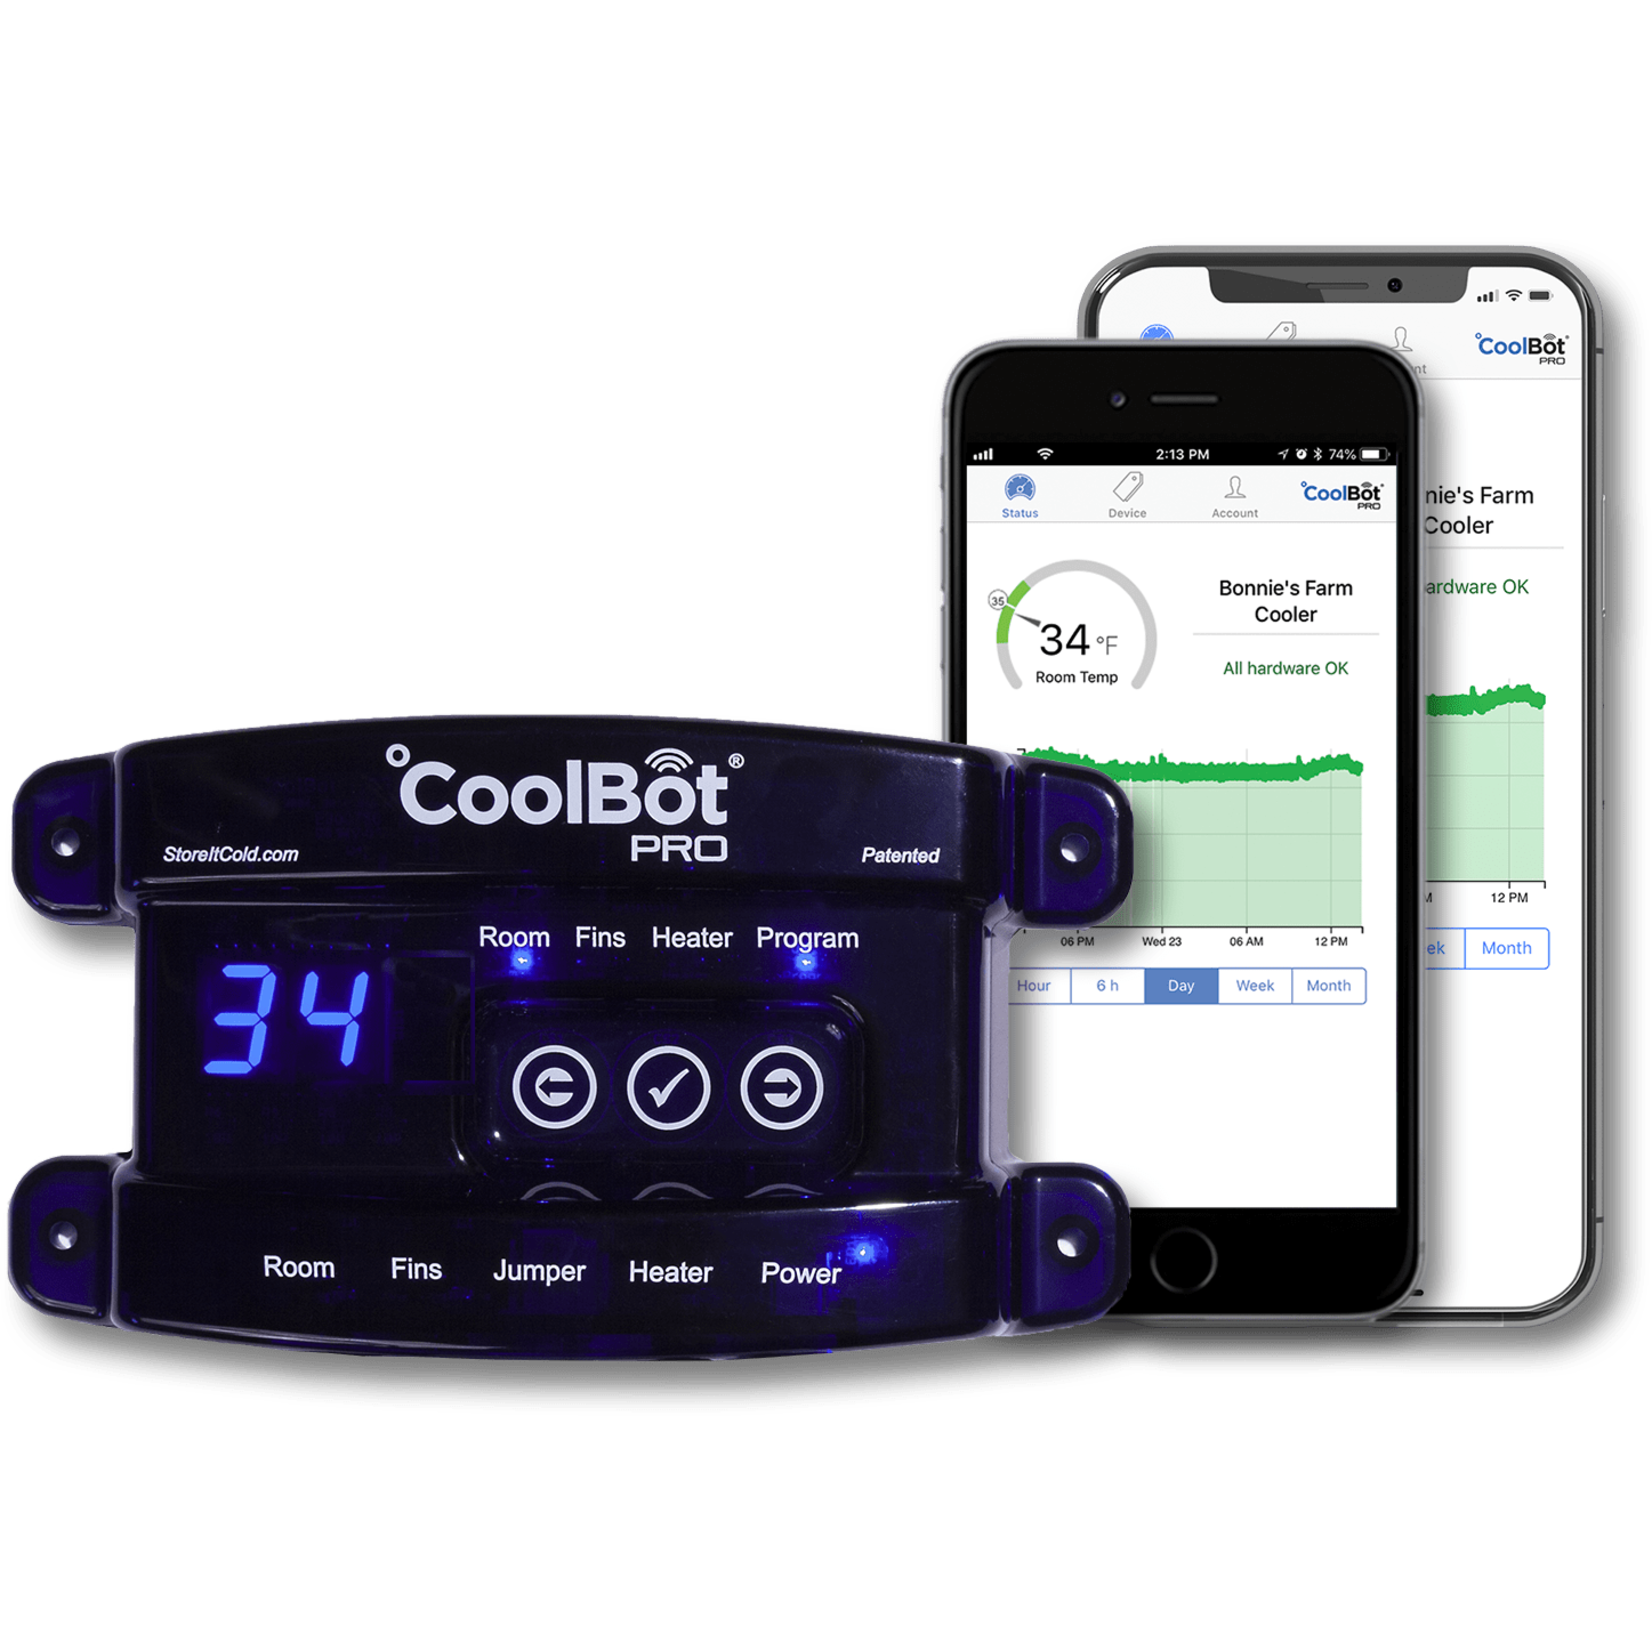 CoolBot CoolBot Pro Walk-in Cooler WiFi Enable